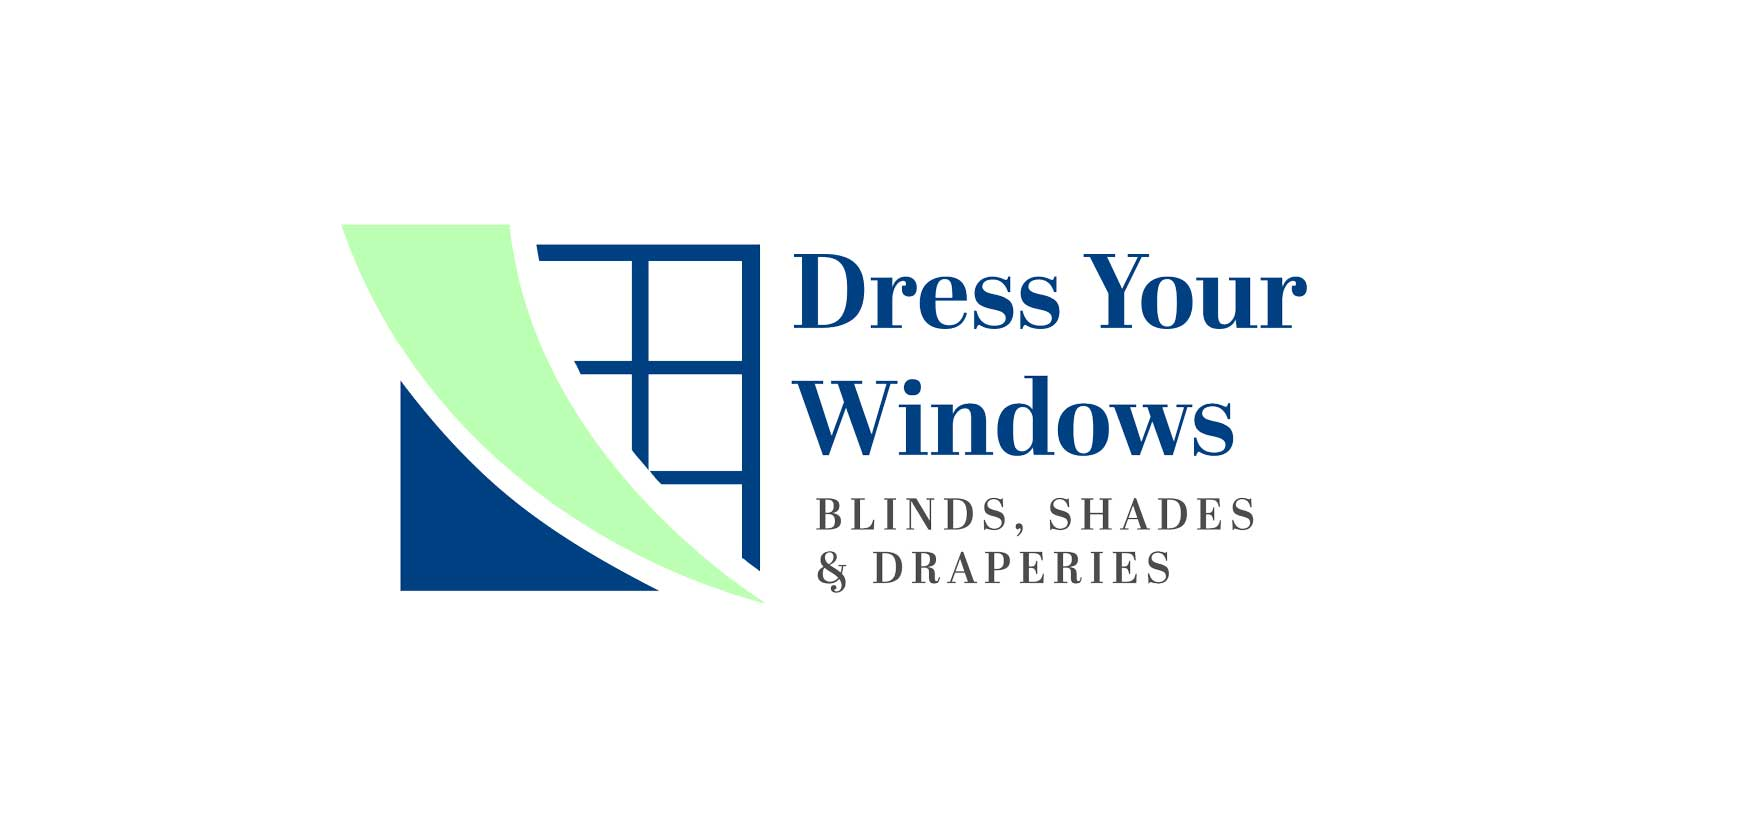 Dress Your Windows